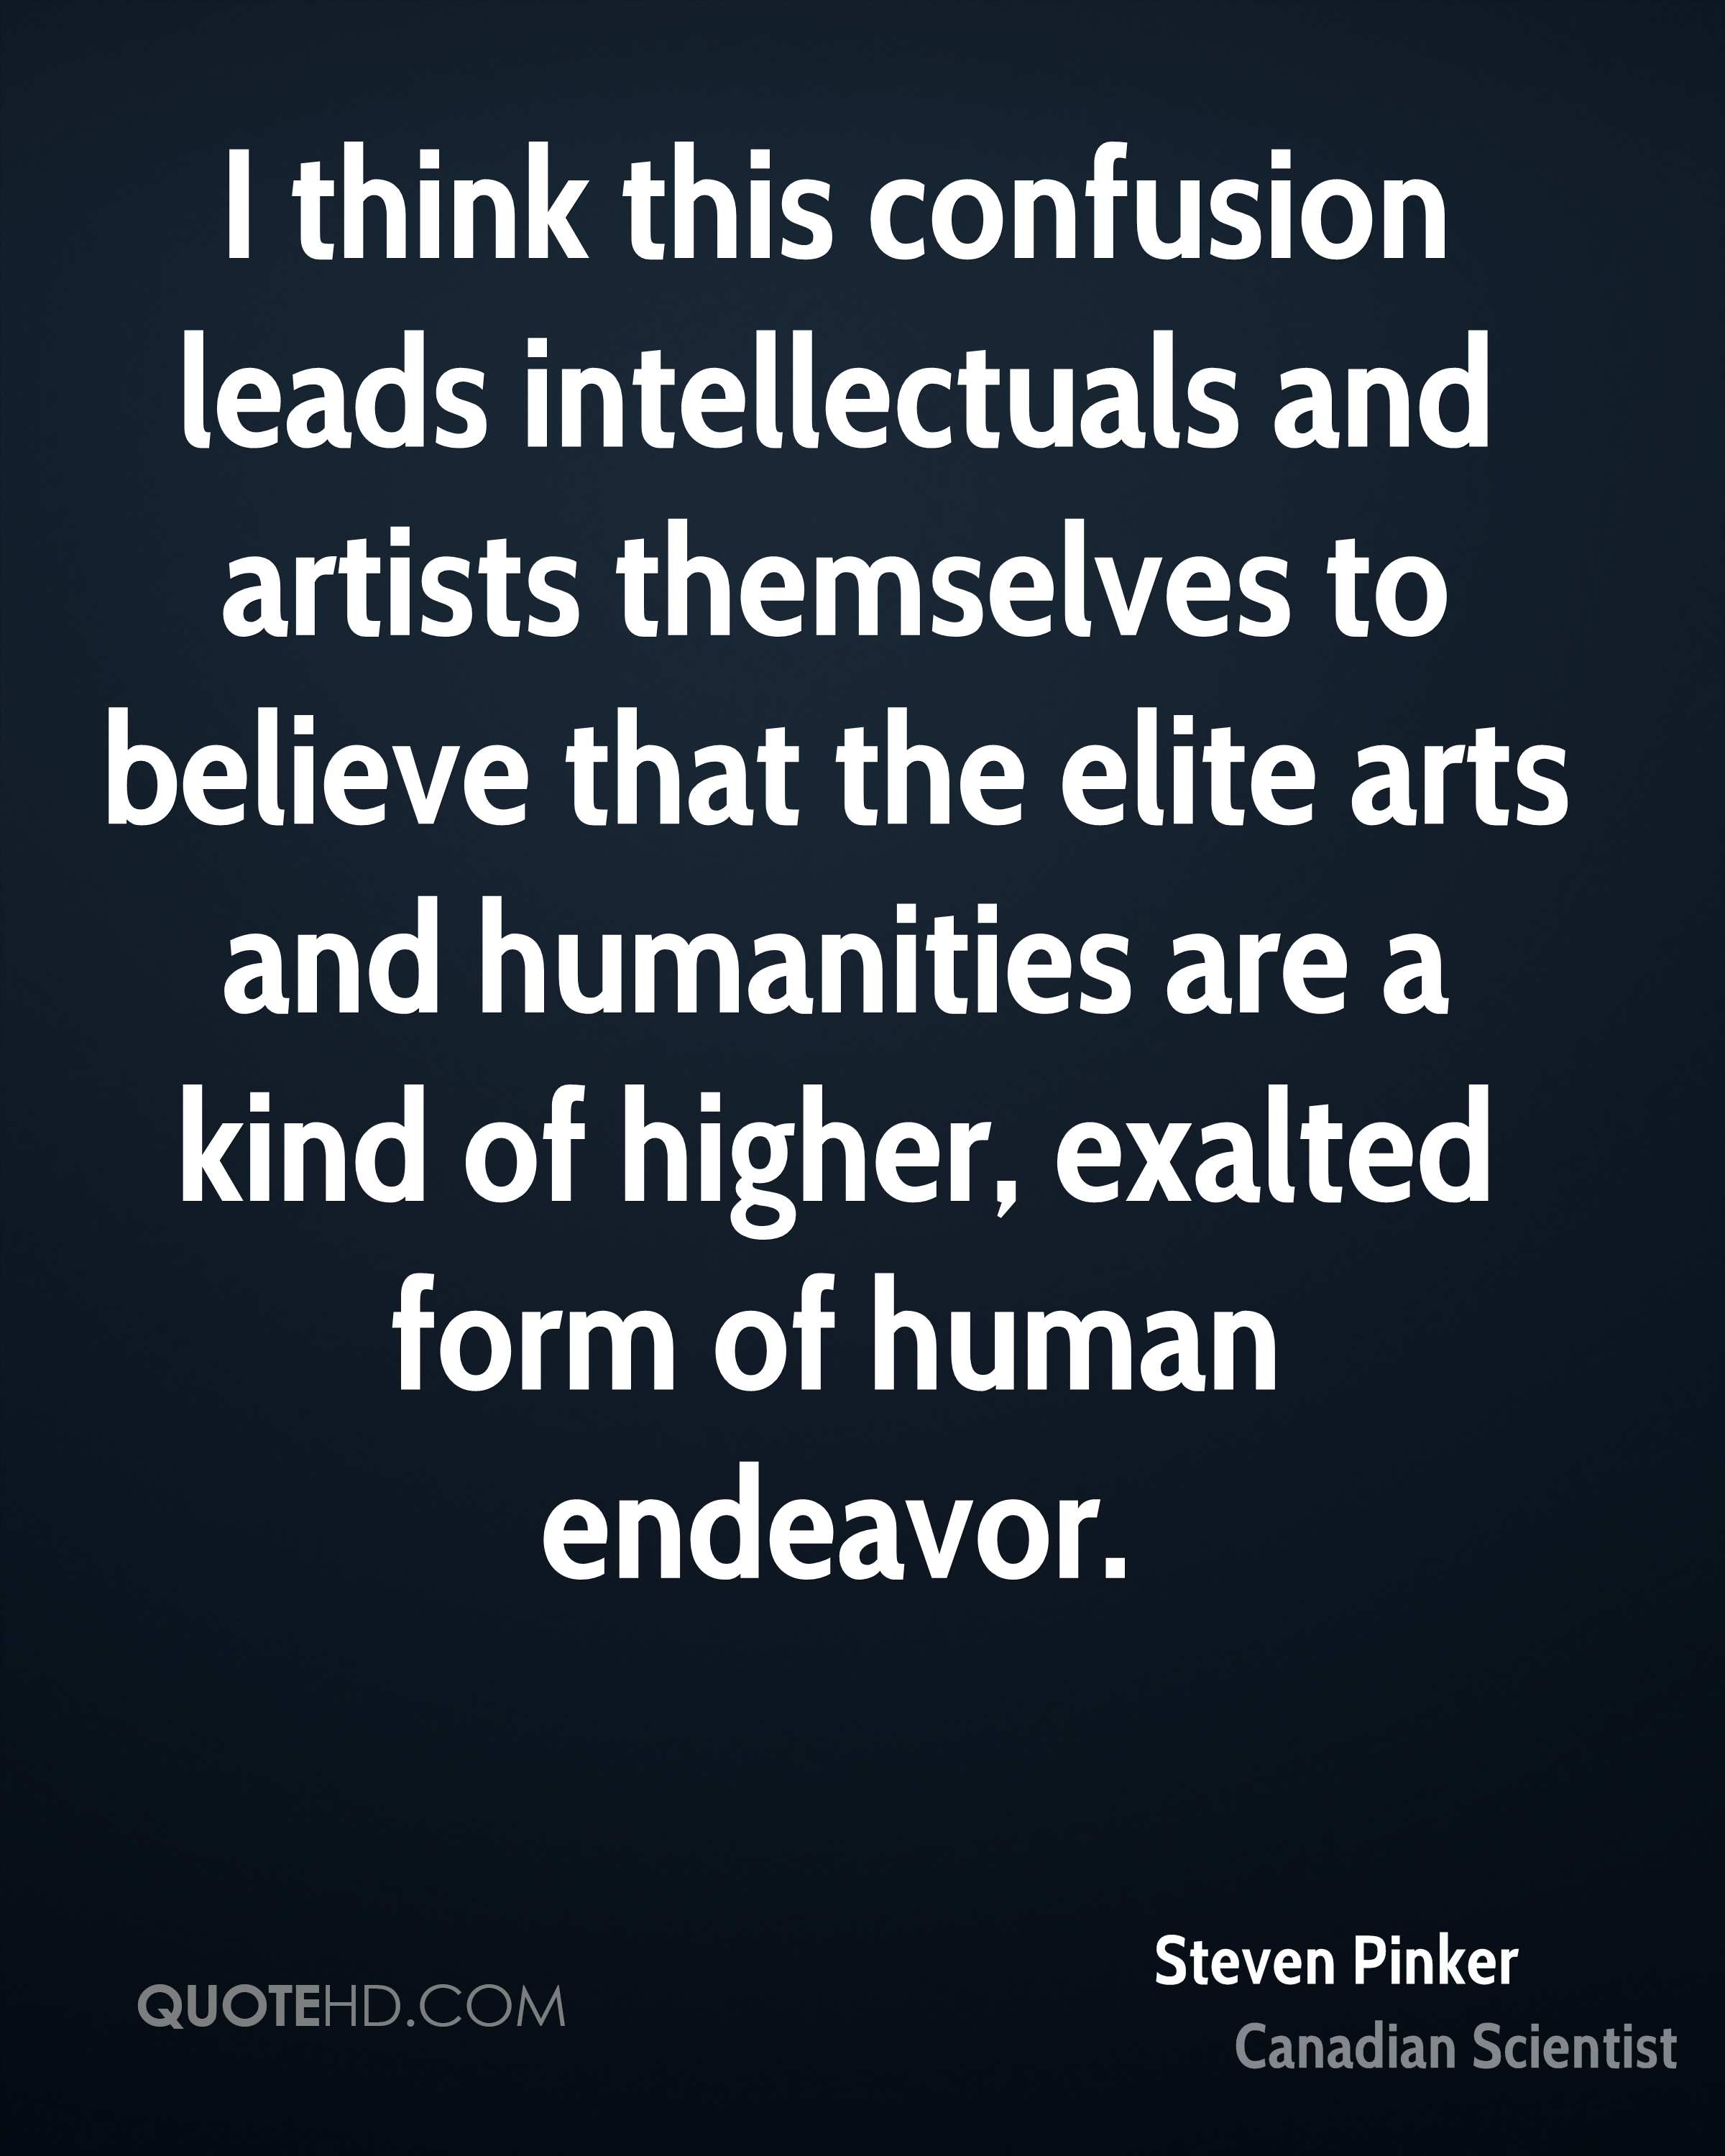 I think this confusion leads intellectuals and artists themselves to believe that the elite arts and humanities are a kind of higher, exalted form of human endeavor.